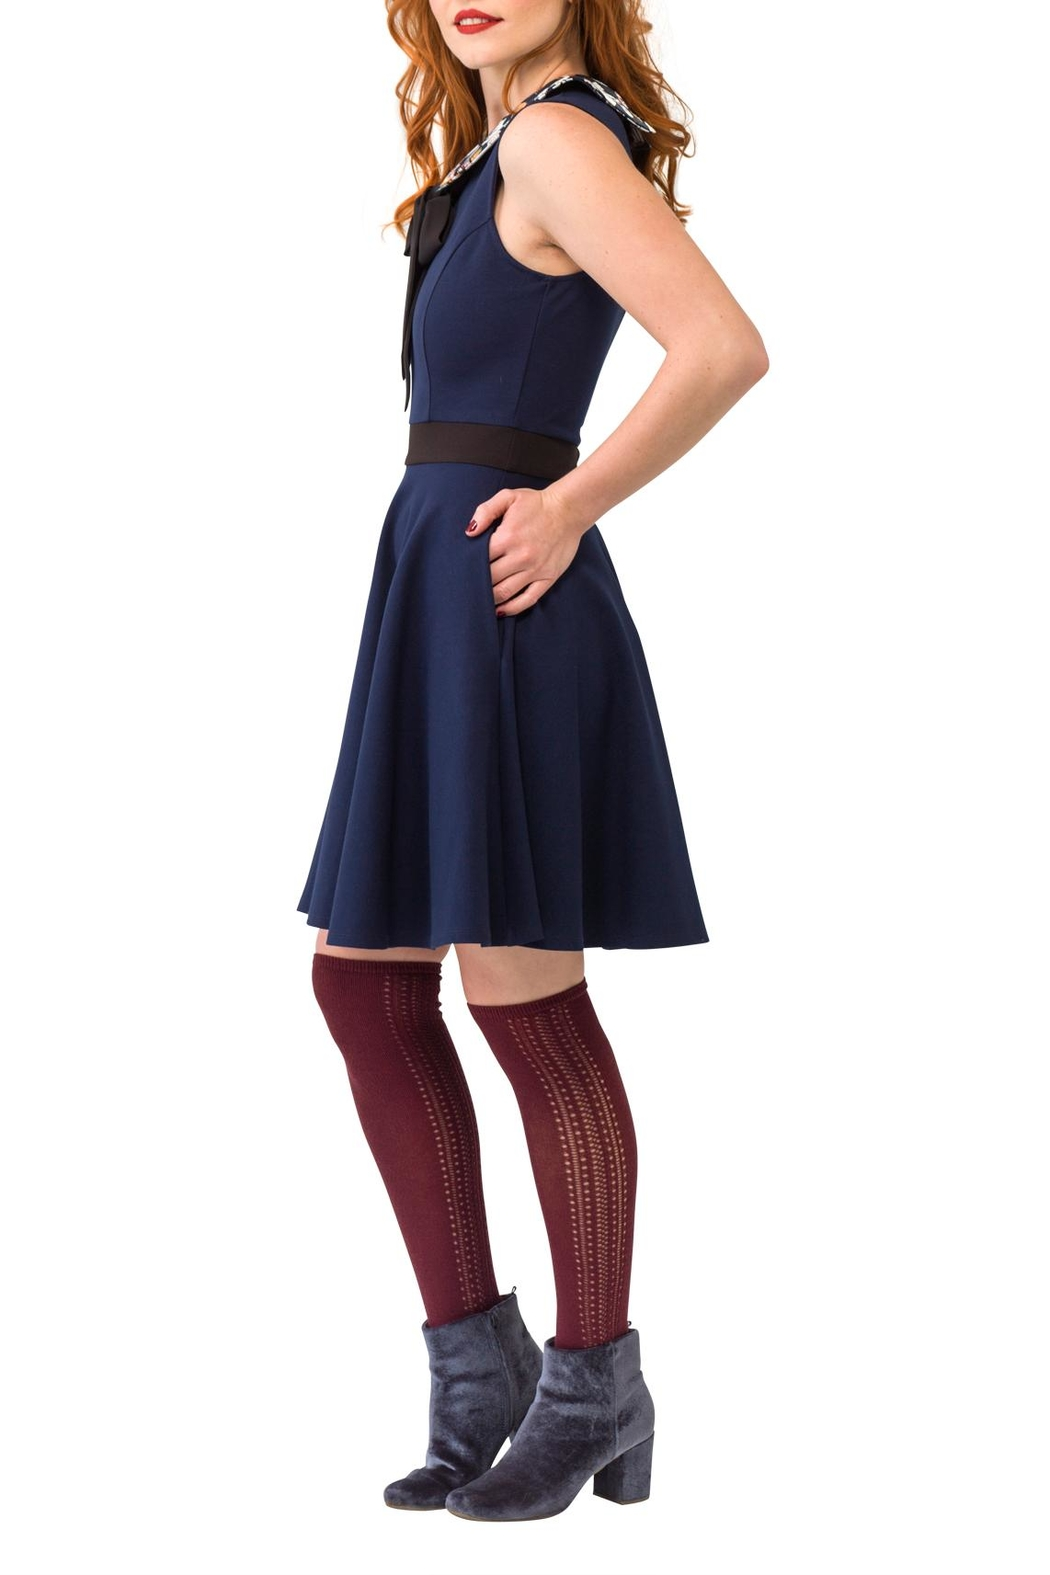 Smak Parlour Cat Collared Dress - Front Full Image